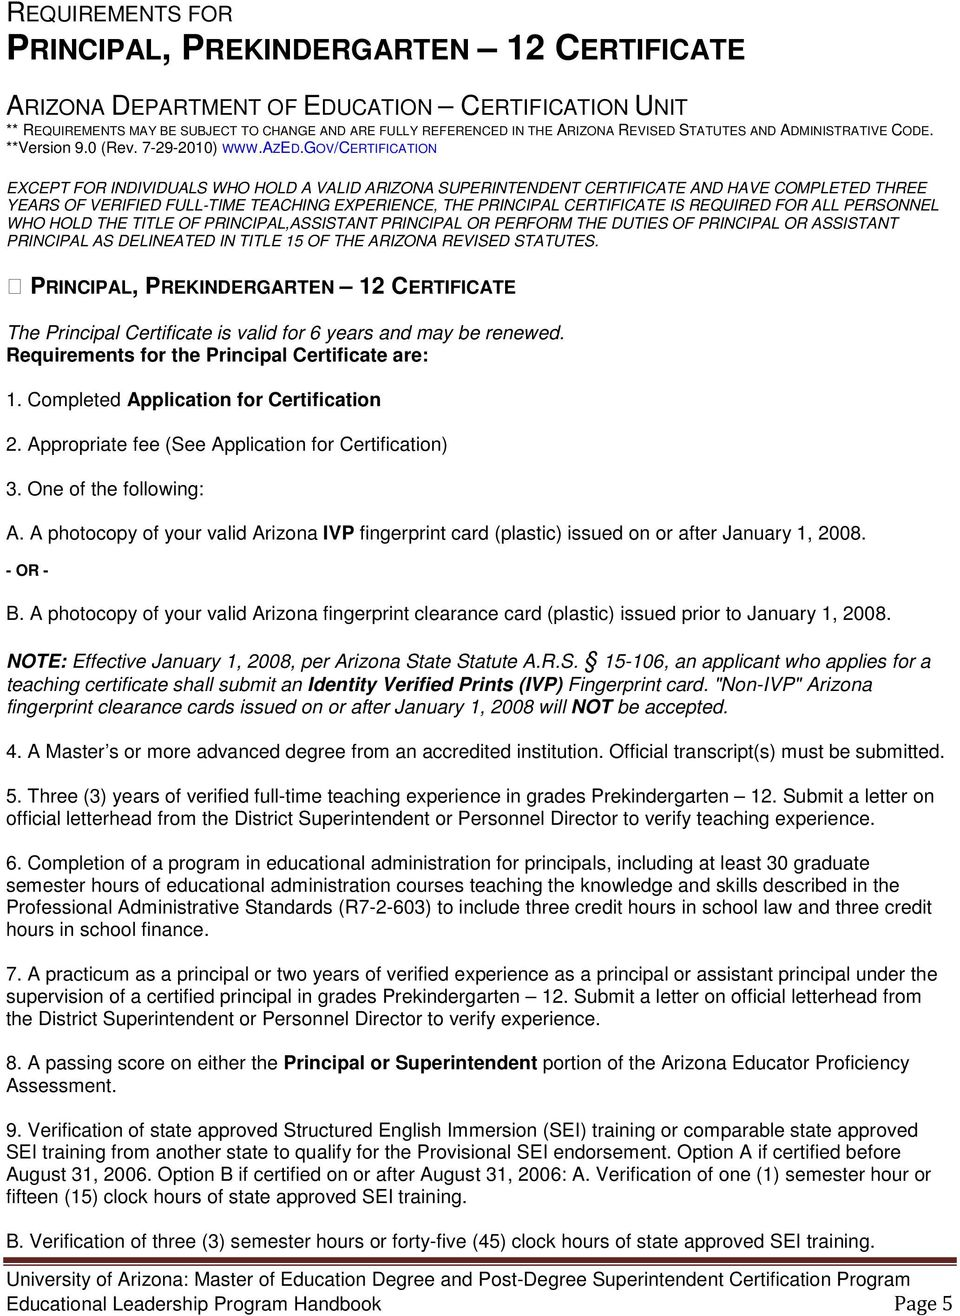 GOV/CERTIFICATION EXCEPT FOR INDIVIDUALS WHO HOLD A VALID ARIZONA SUPERINTENDENT CERTIFICATE AND HAVE COMPLETED THREE YEARS OF VERIFIED FULL-TIME TEACHING EXPERIENCE, THE PRINCIPAL CERTIFICATE IS